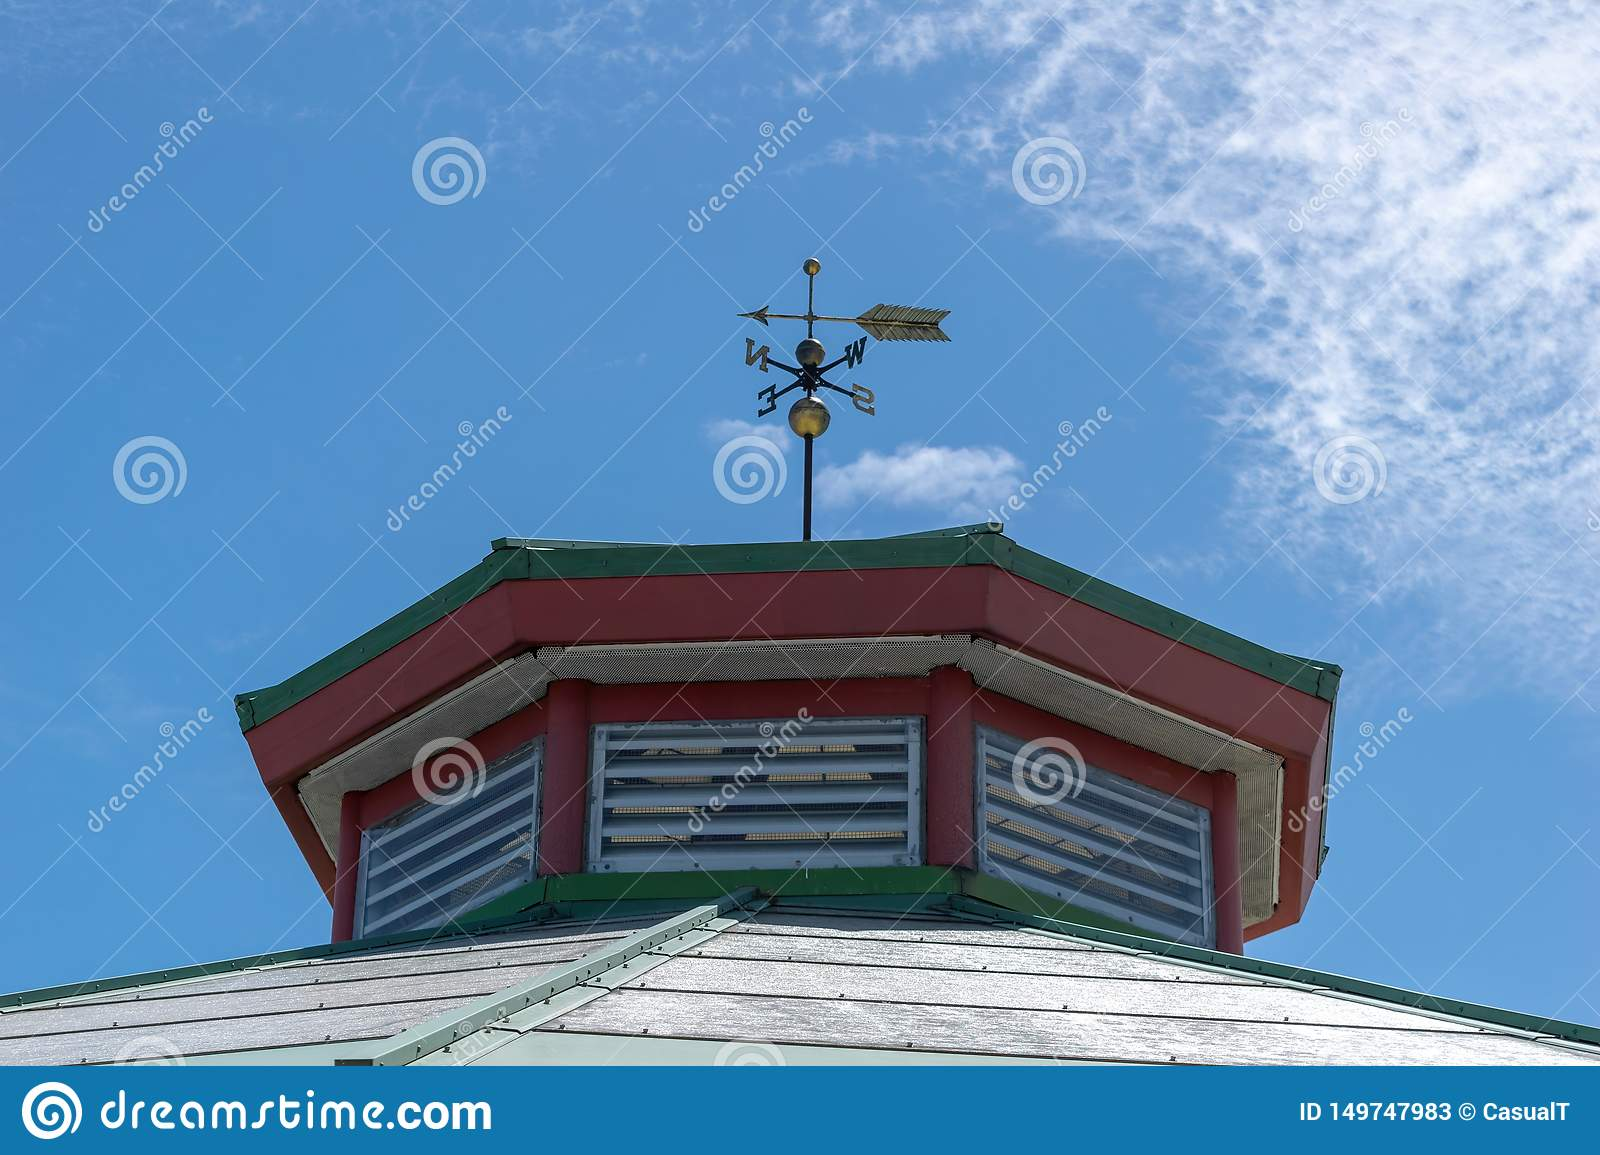 A weather vane atop an old building, against a blue sky with some light fluffy clouds